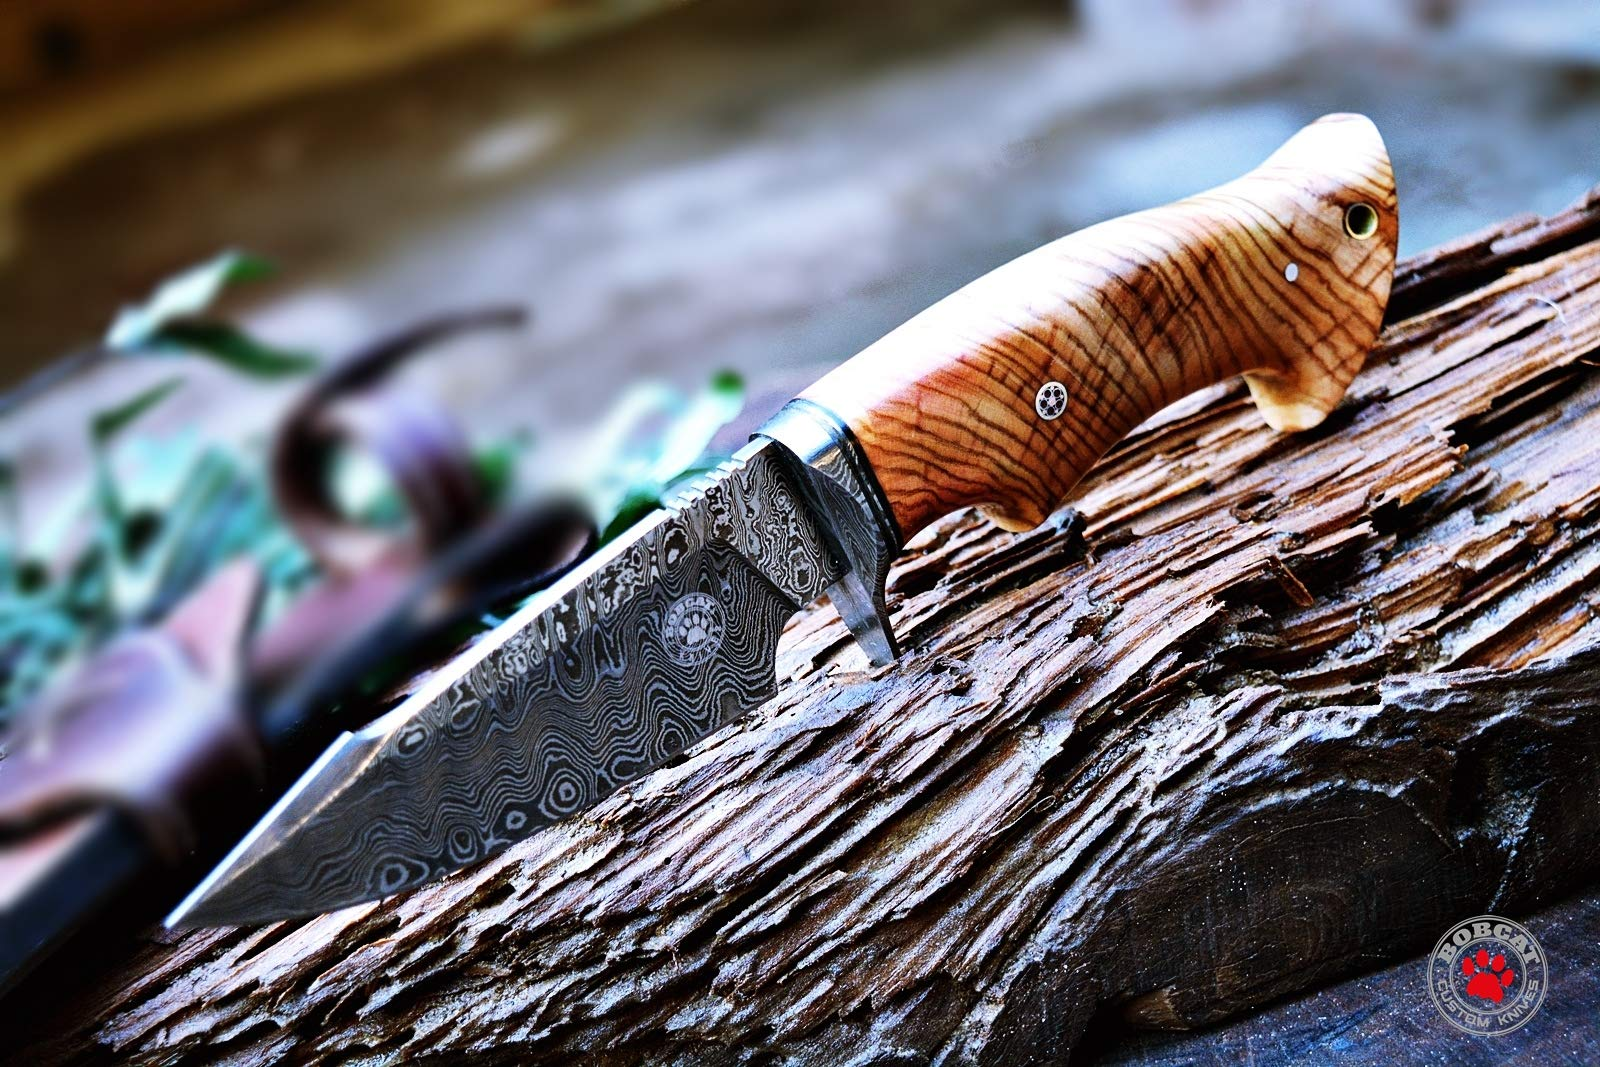 Custom Handmade Hunting Knife Bowie Knife Damascus Steel Survival Knife EDC 10'' Overall Olive Wood with Sheath by Bobcat Knives (Image #6)